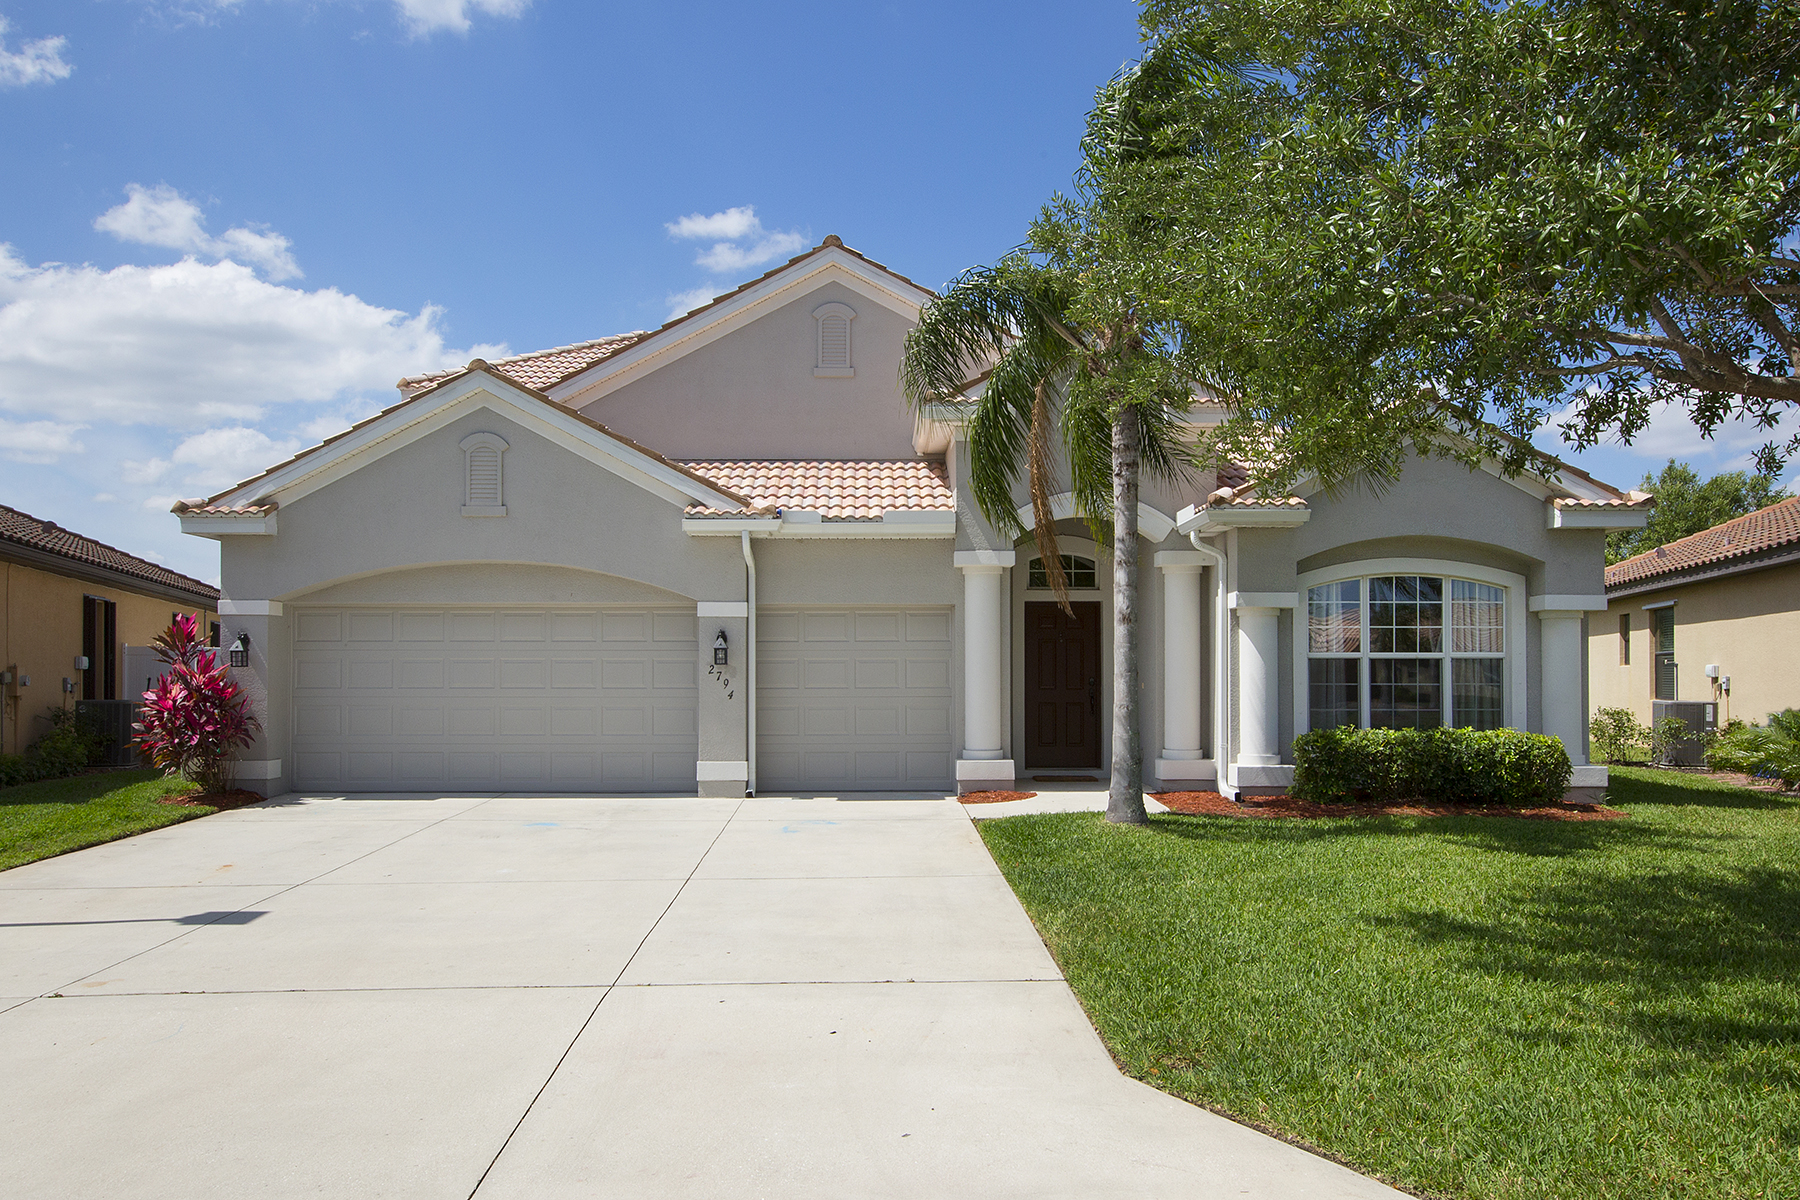 Single Family Home for Sale at THE FORUM - PROMENADE 2794 Via Piazza Loop Fort Myers, Florida, 33905 United States